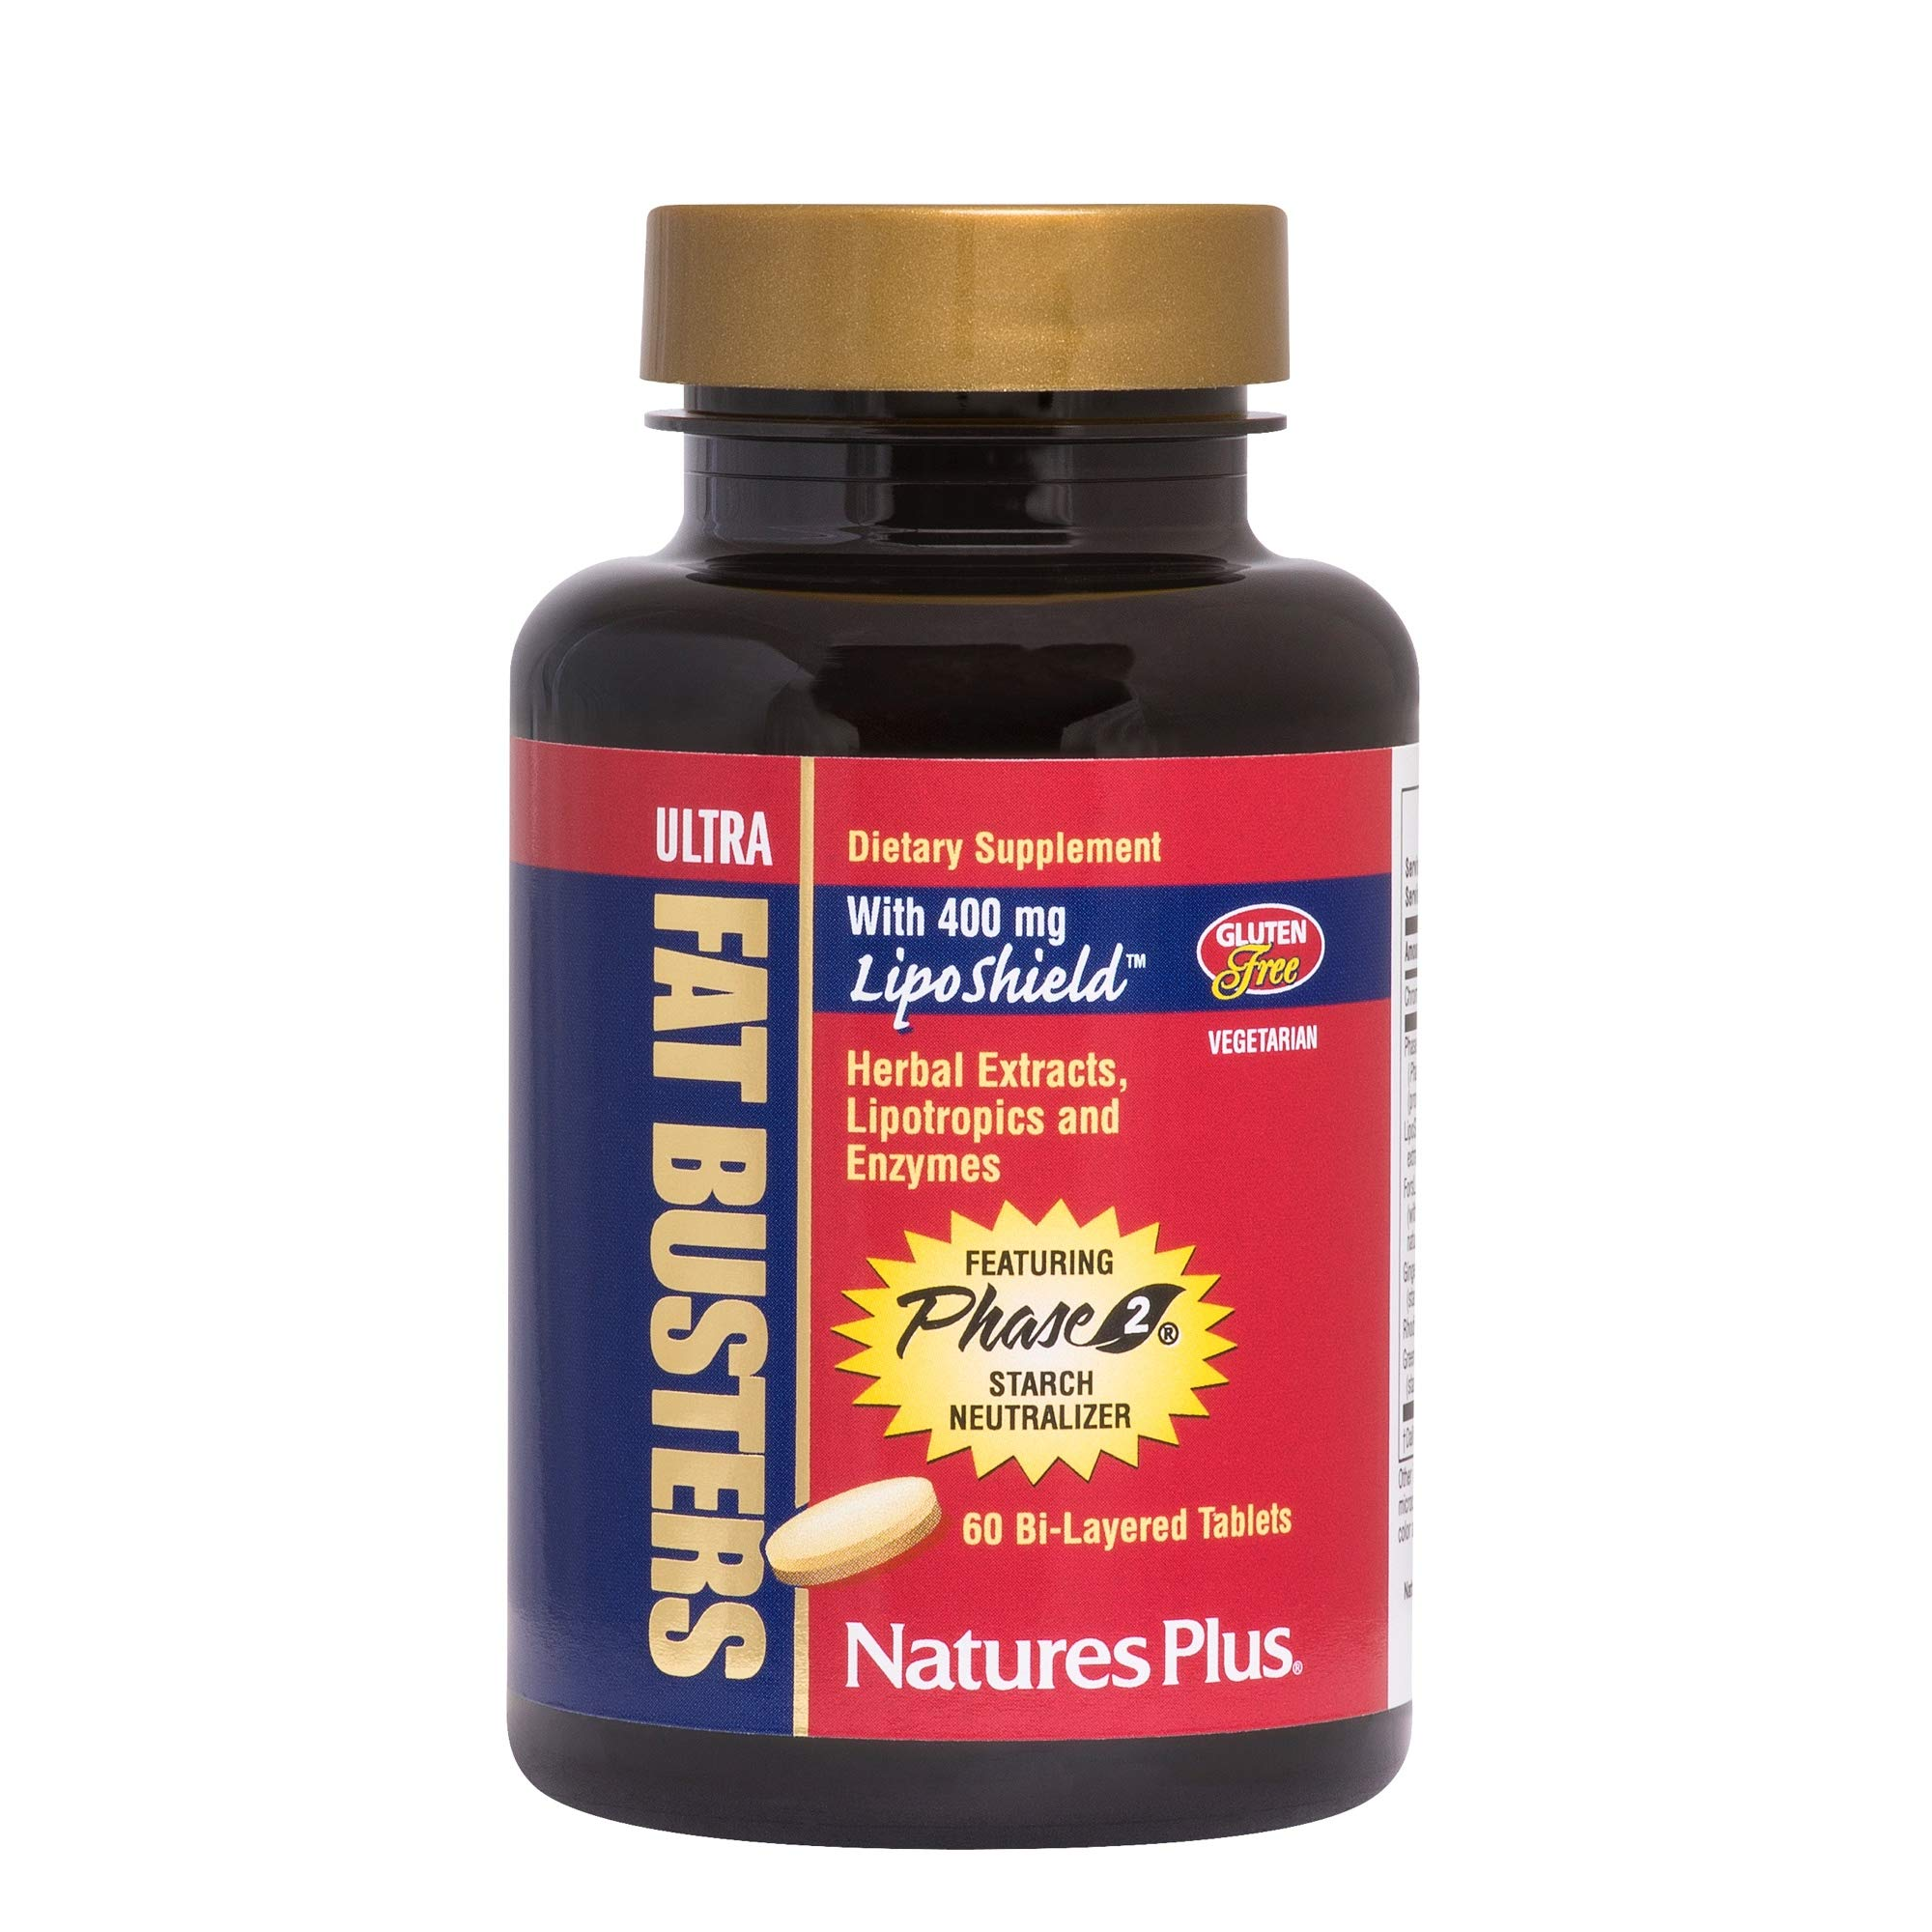 NaturesPlus Ultra Fat Busters - 60 Vegetarian Tablets - Weight Management Support Supplement - Green Tea, Ginger & Chromium - Targets Fat & Carbohydrates - Gluten-Free - 30 Servings